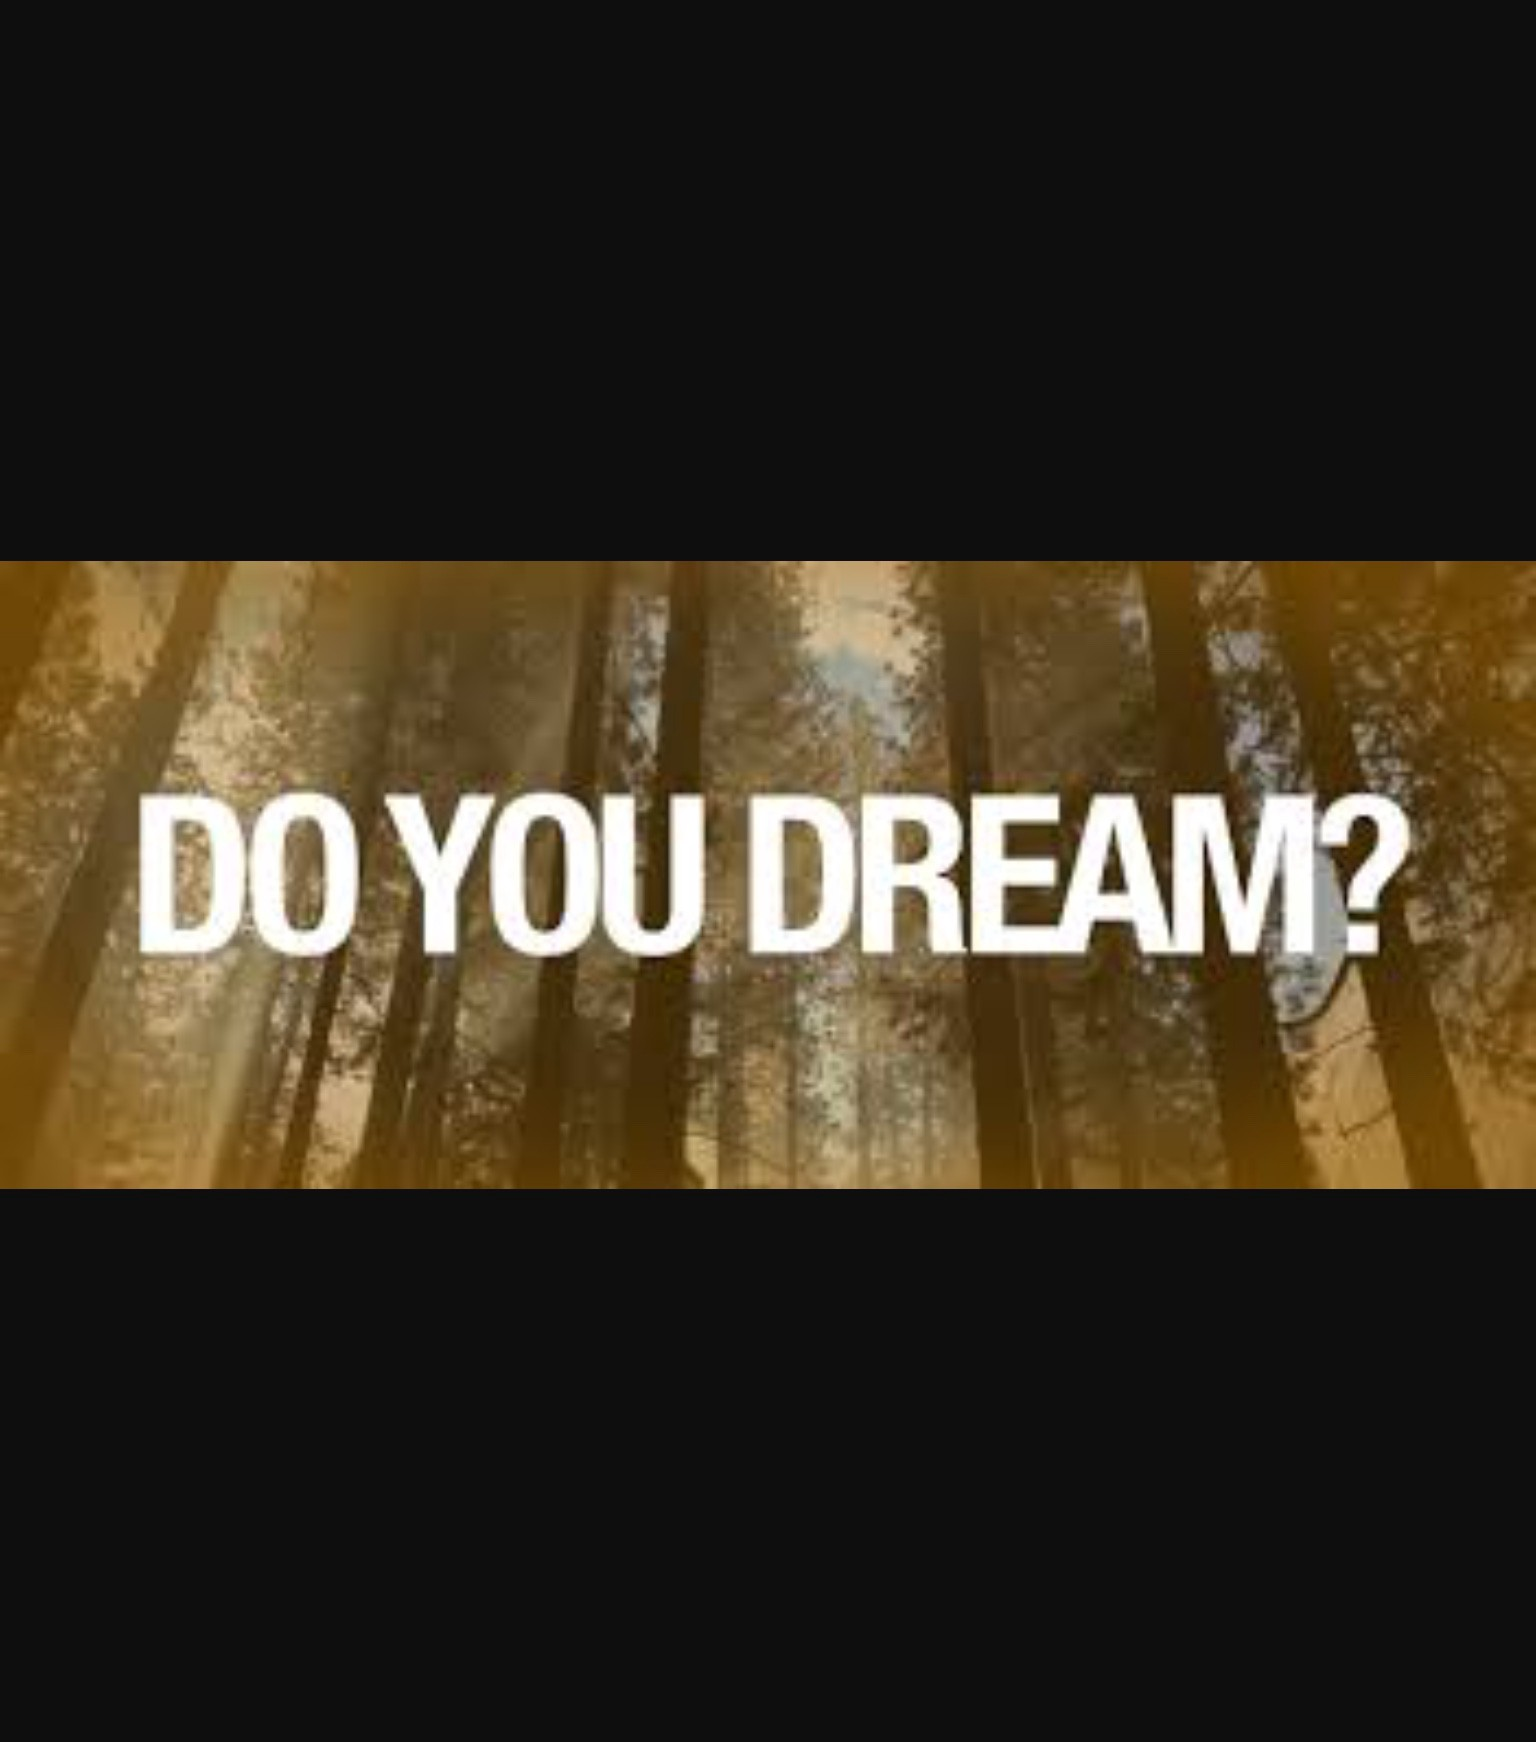 What do you dream about if you play the guitar